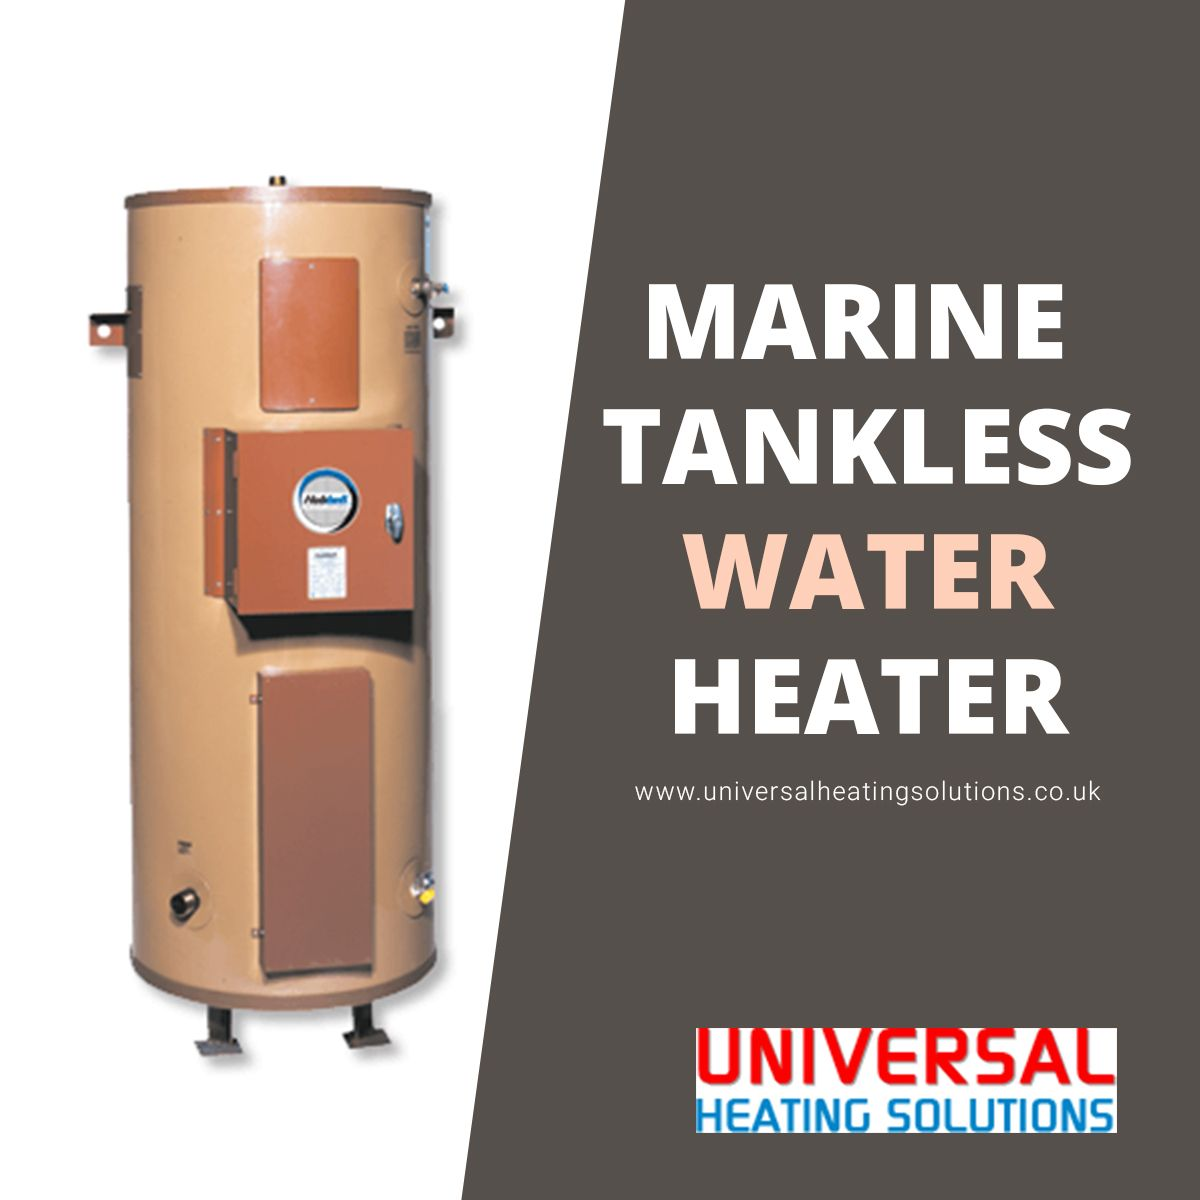 Universal heating solutions is a trusted company for the